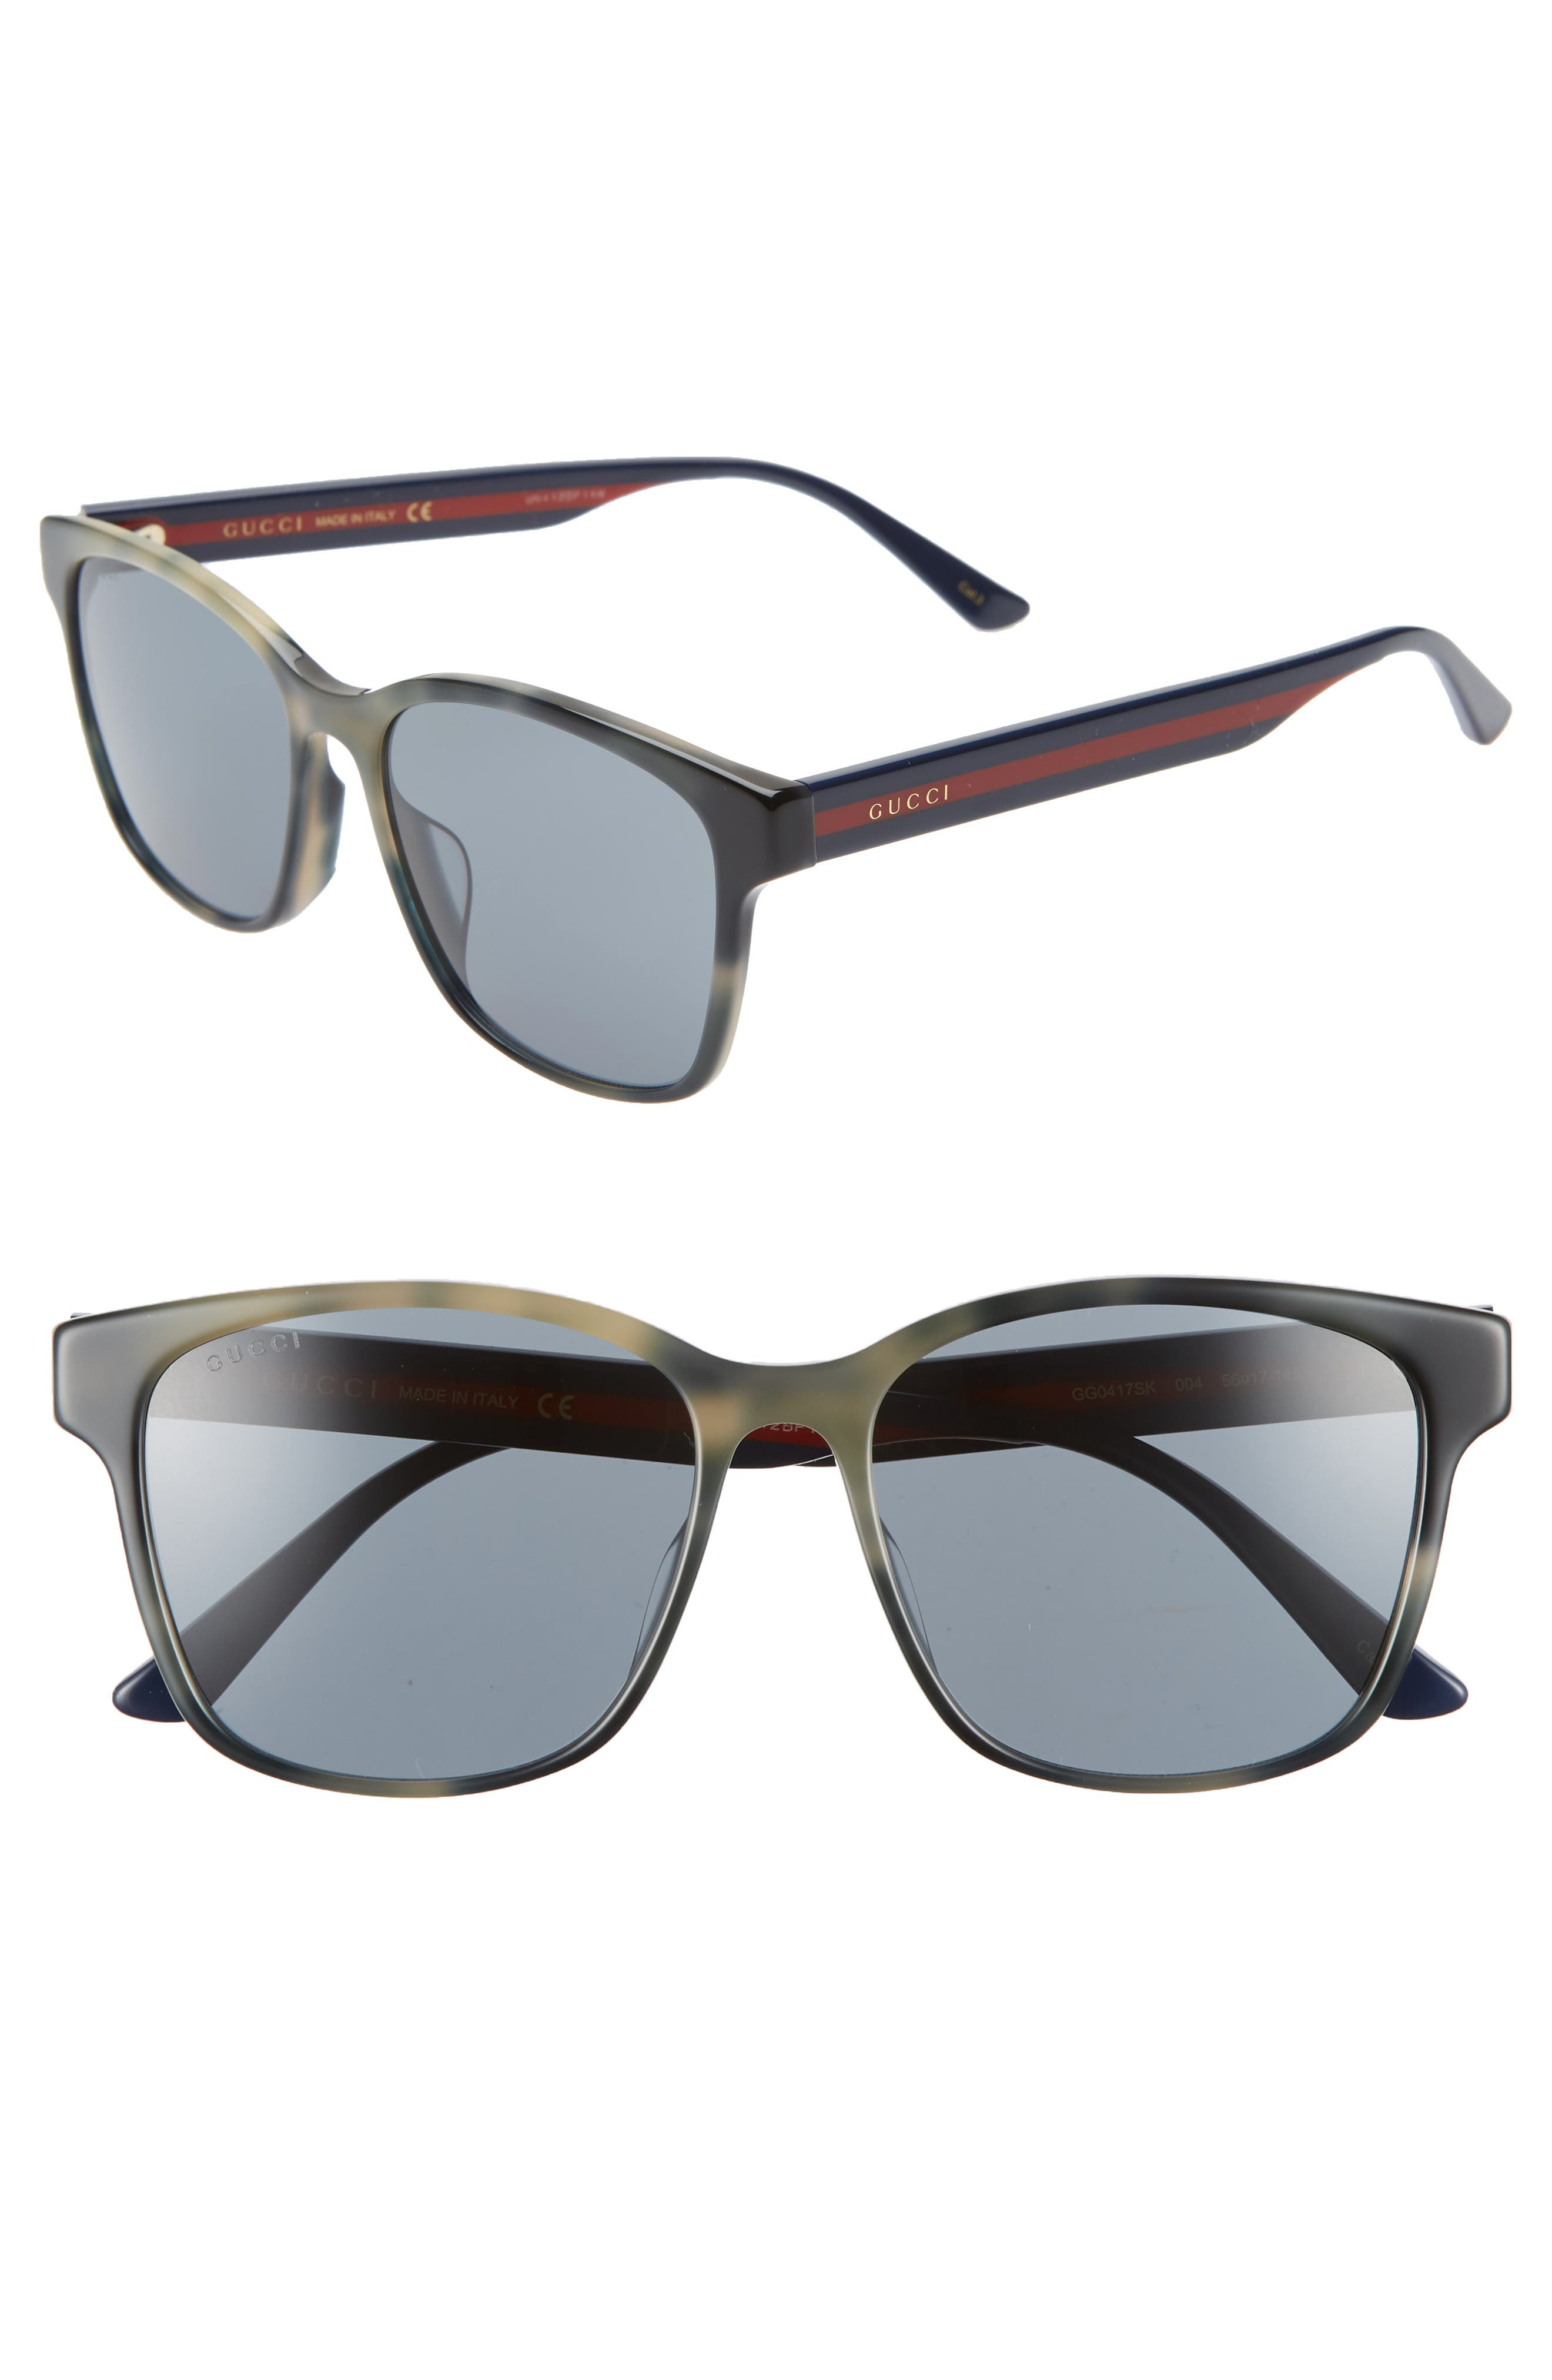 GUCCI, 56mm Square Sunglasses, Main thumbnail 1, color, GREY HAVANA